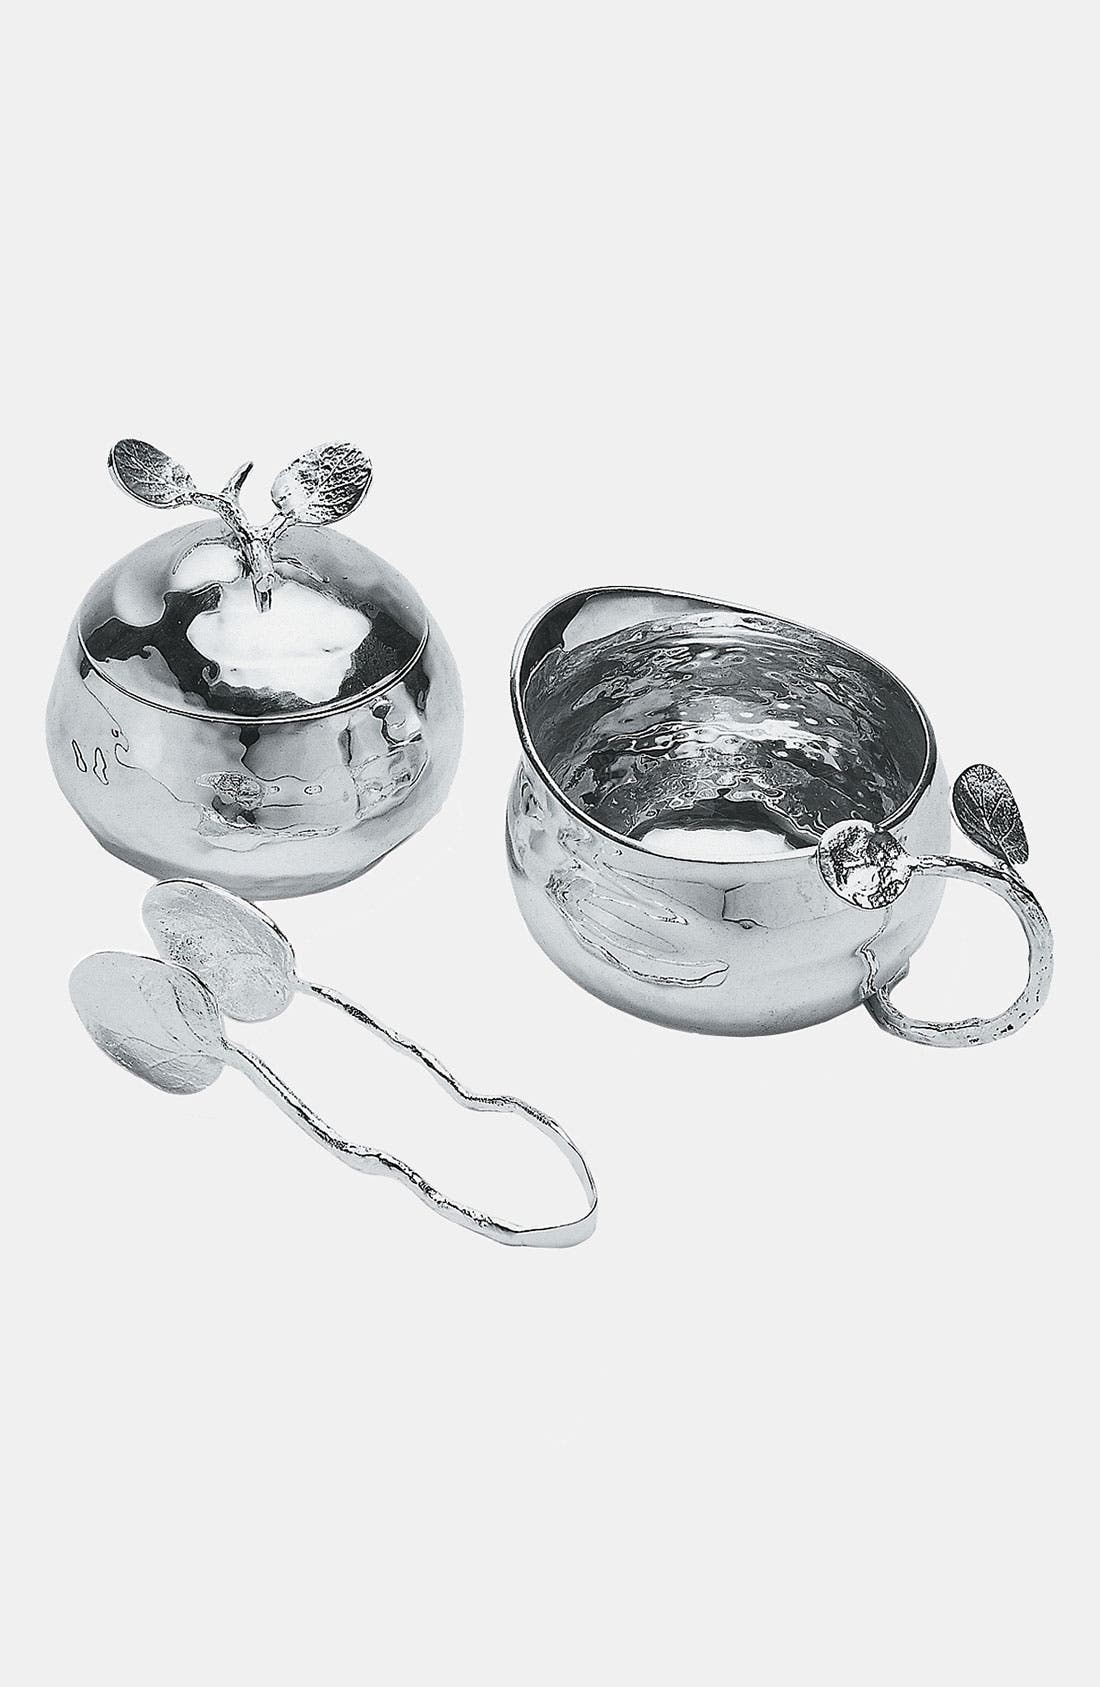 Main Image - Michael Aram 'Botanical Leaf' Sugar Bowl, Creamer & Tongs